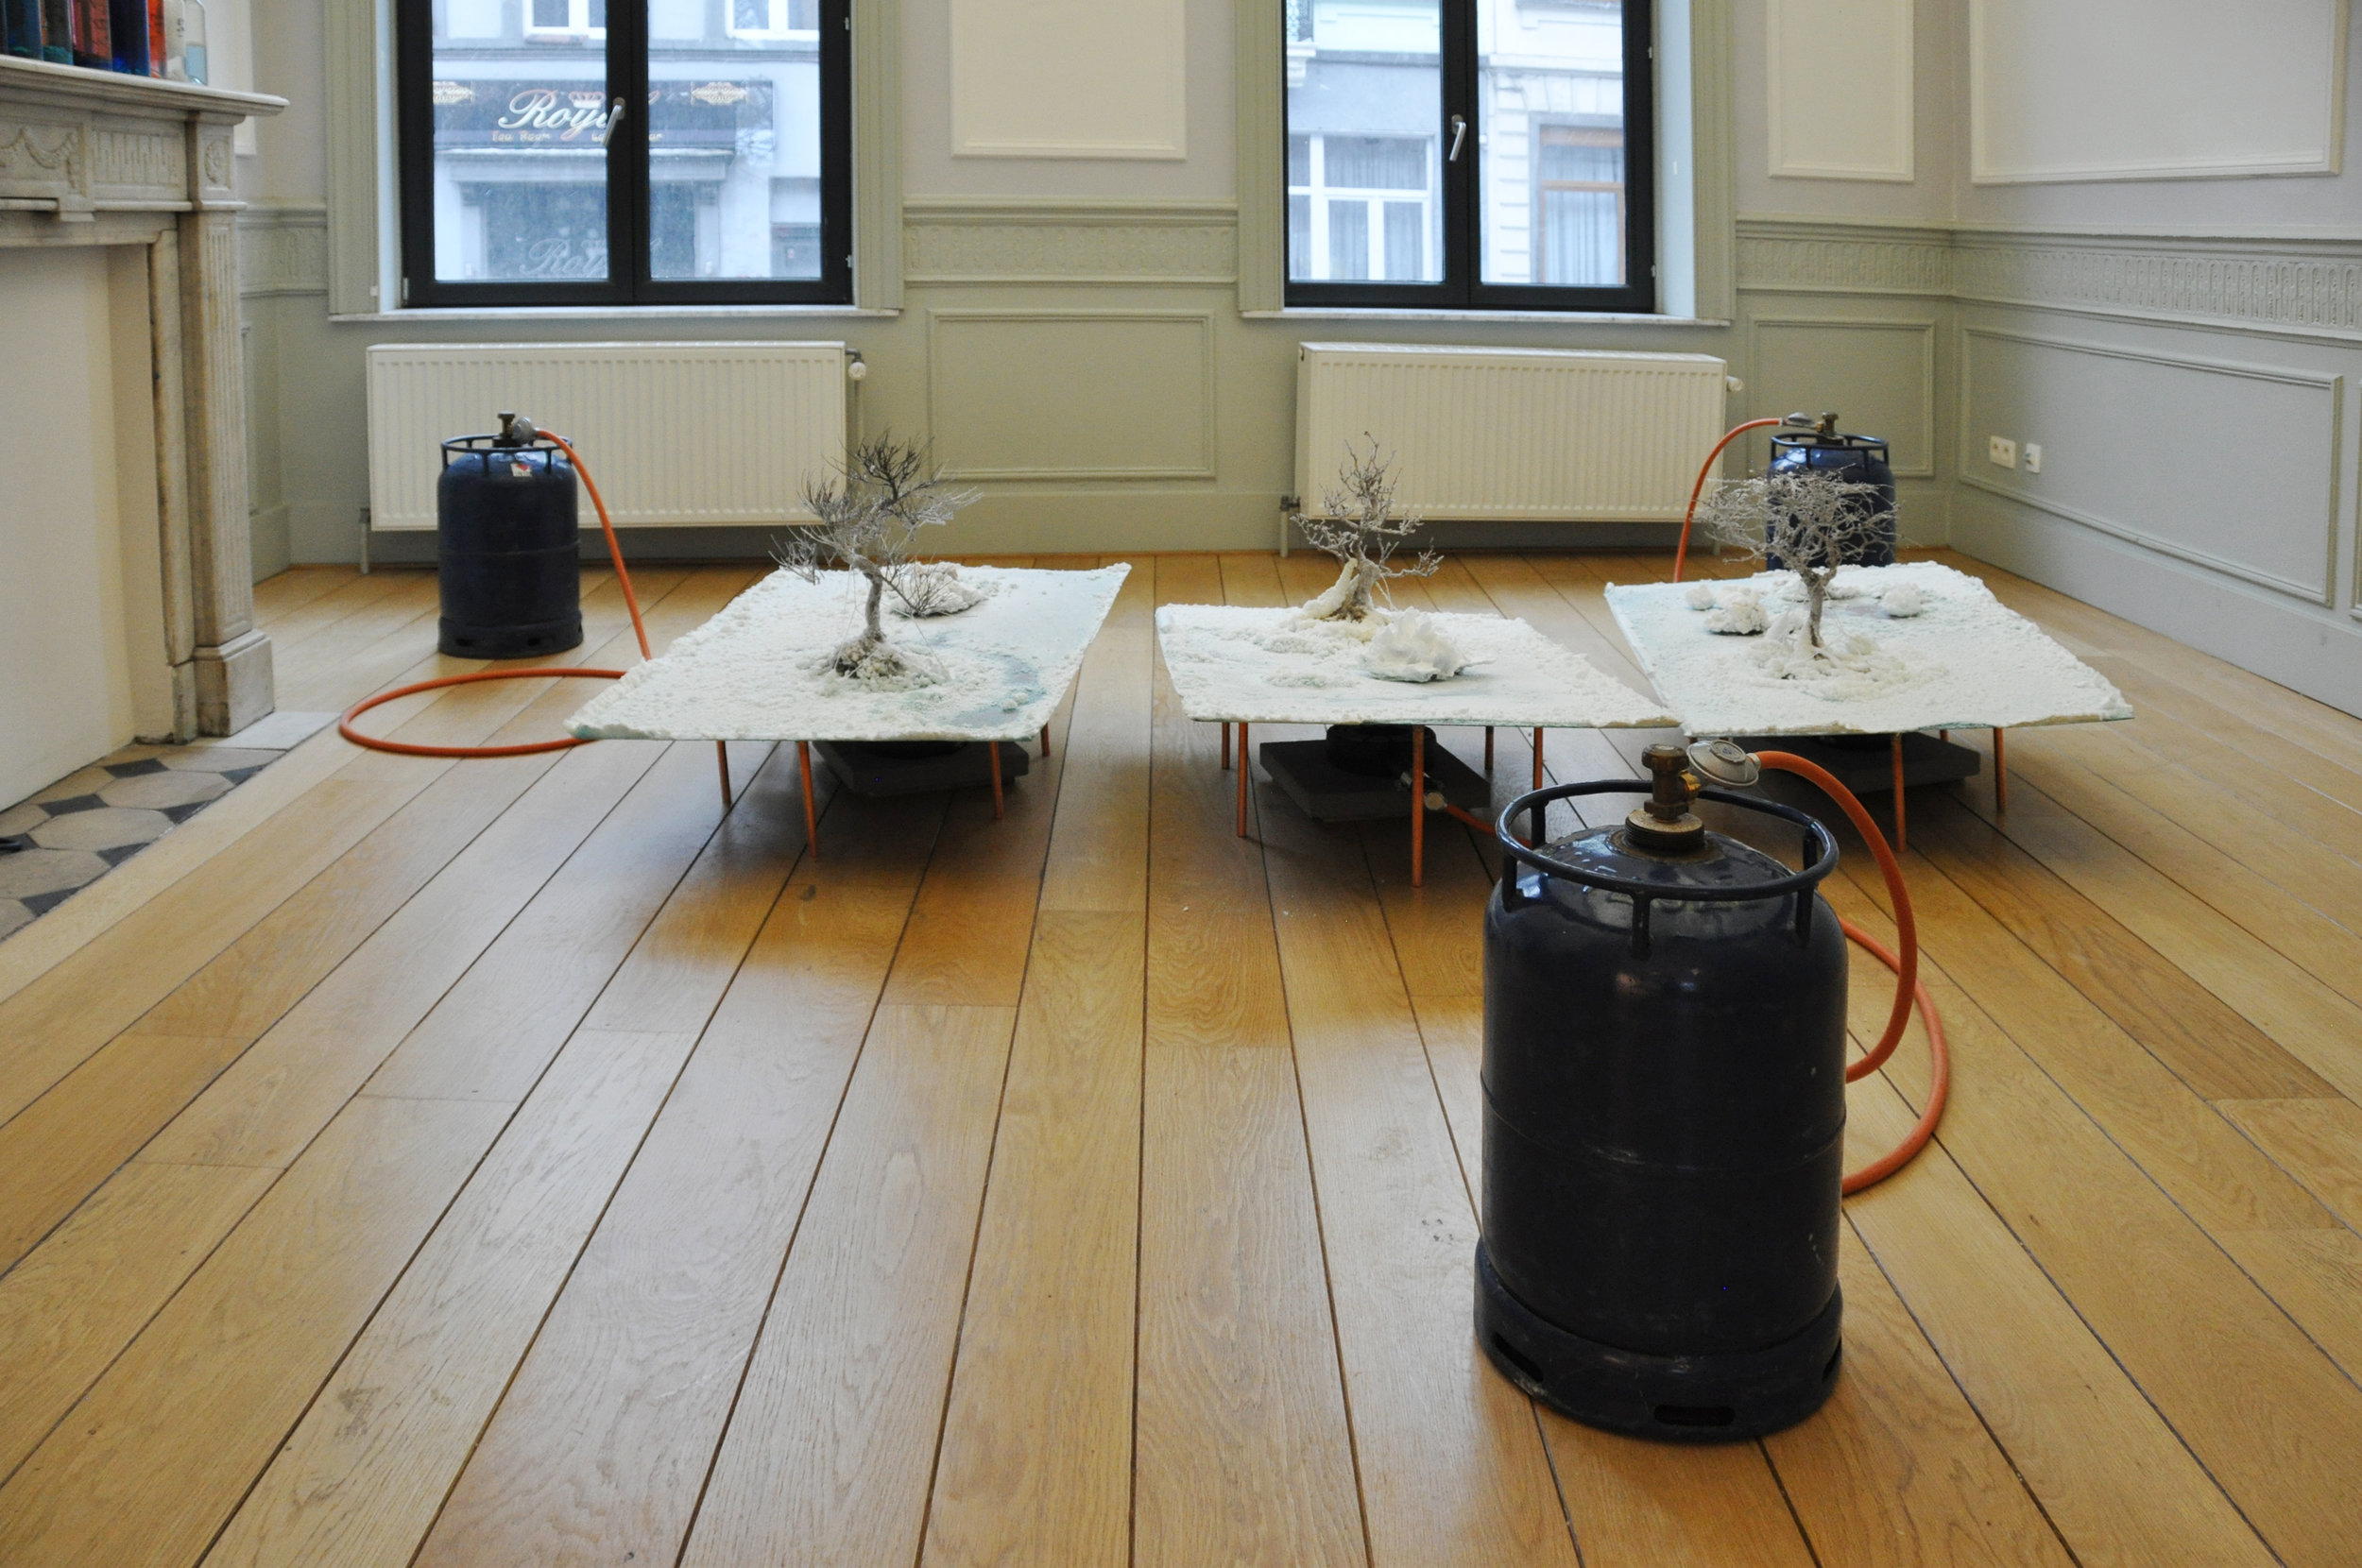 Salinas, 2017, Burners, Gas-bottles, copper plates, bonsai and salt. Installation view at Morpho, Brussels. Photo by:   Kiki Petratou